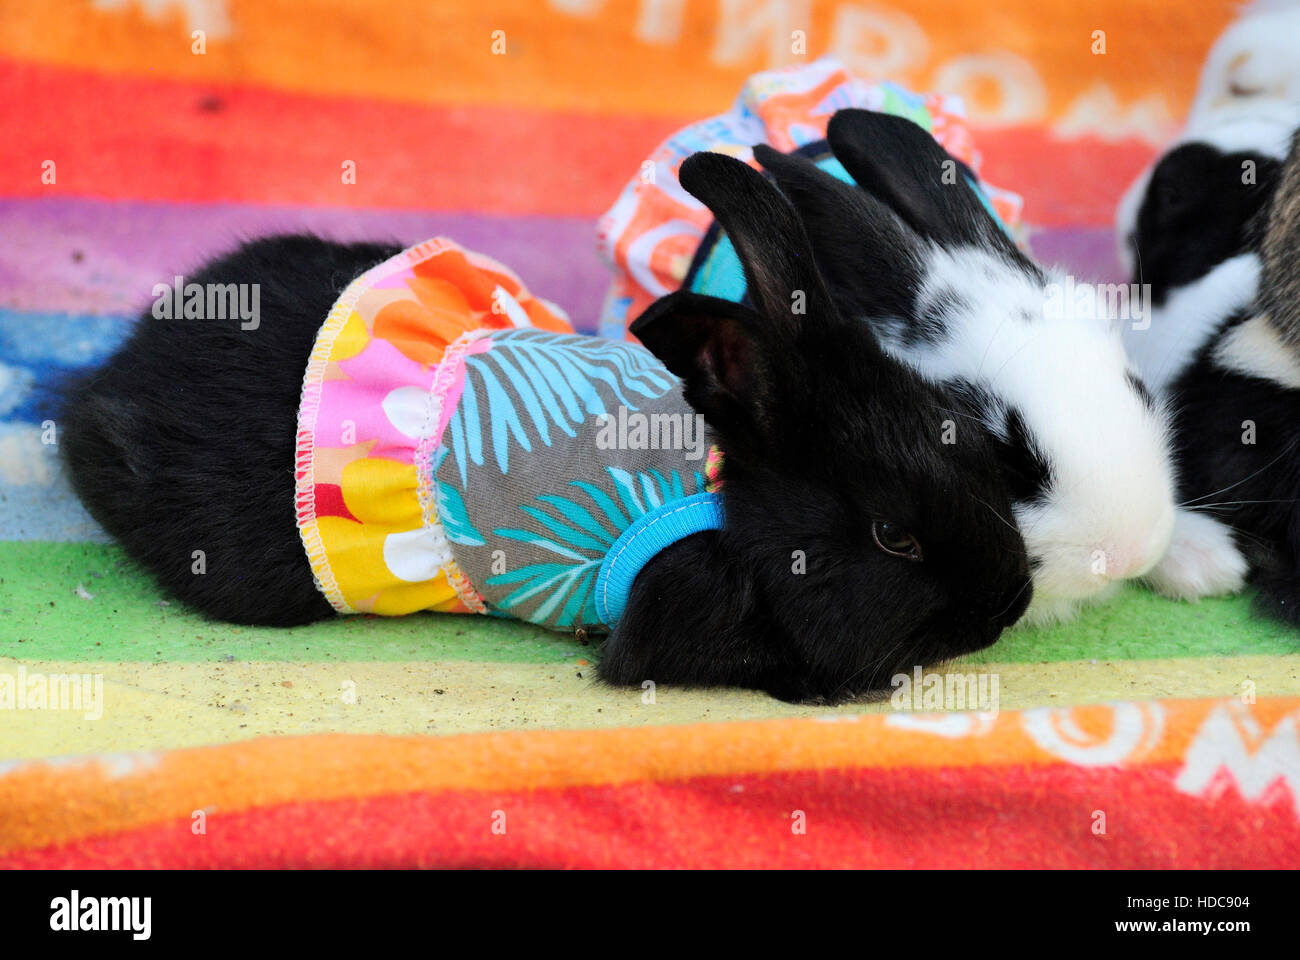 Rabbits dressed in colourful skirts at bird souq in Doha, Qatar. - Stock Image